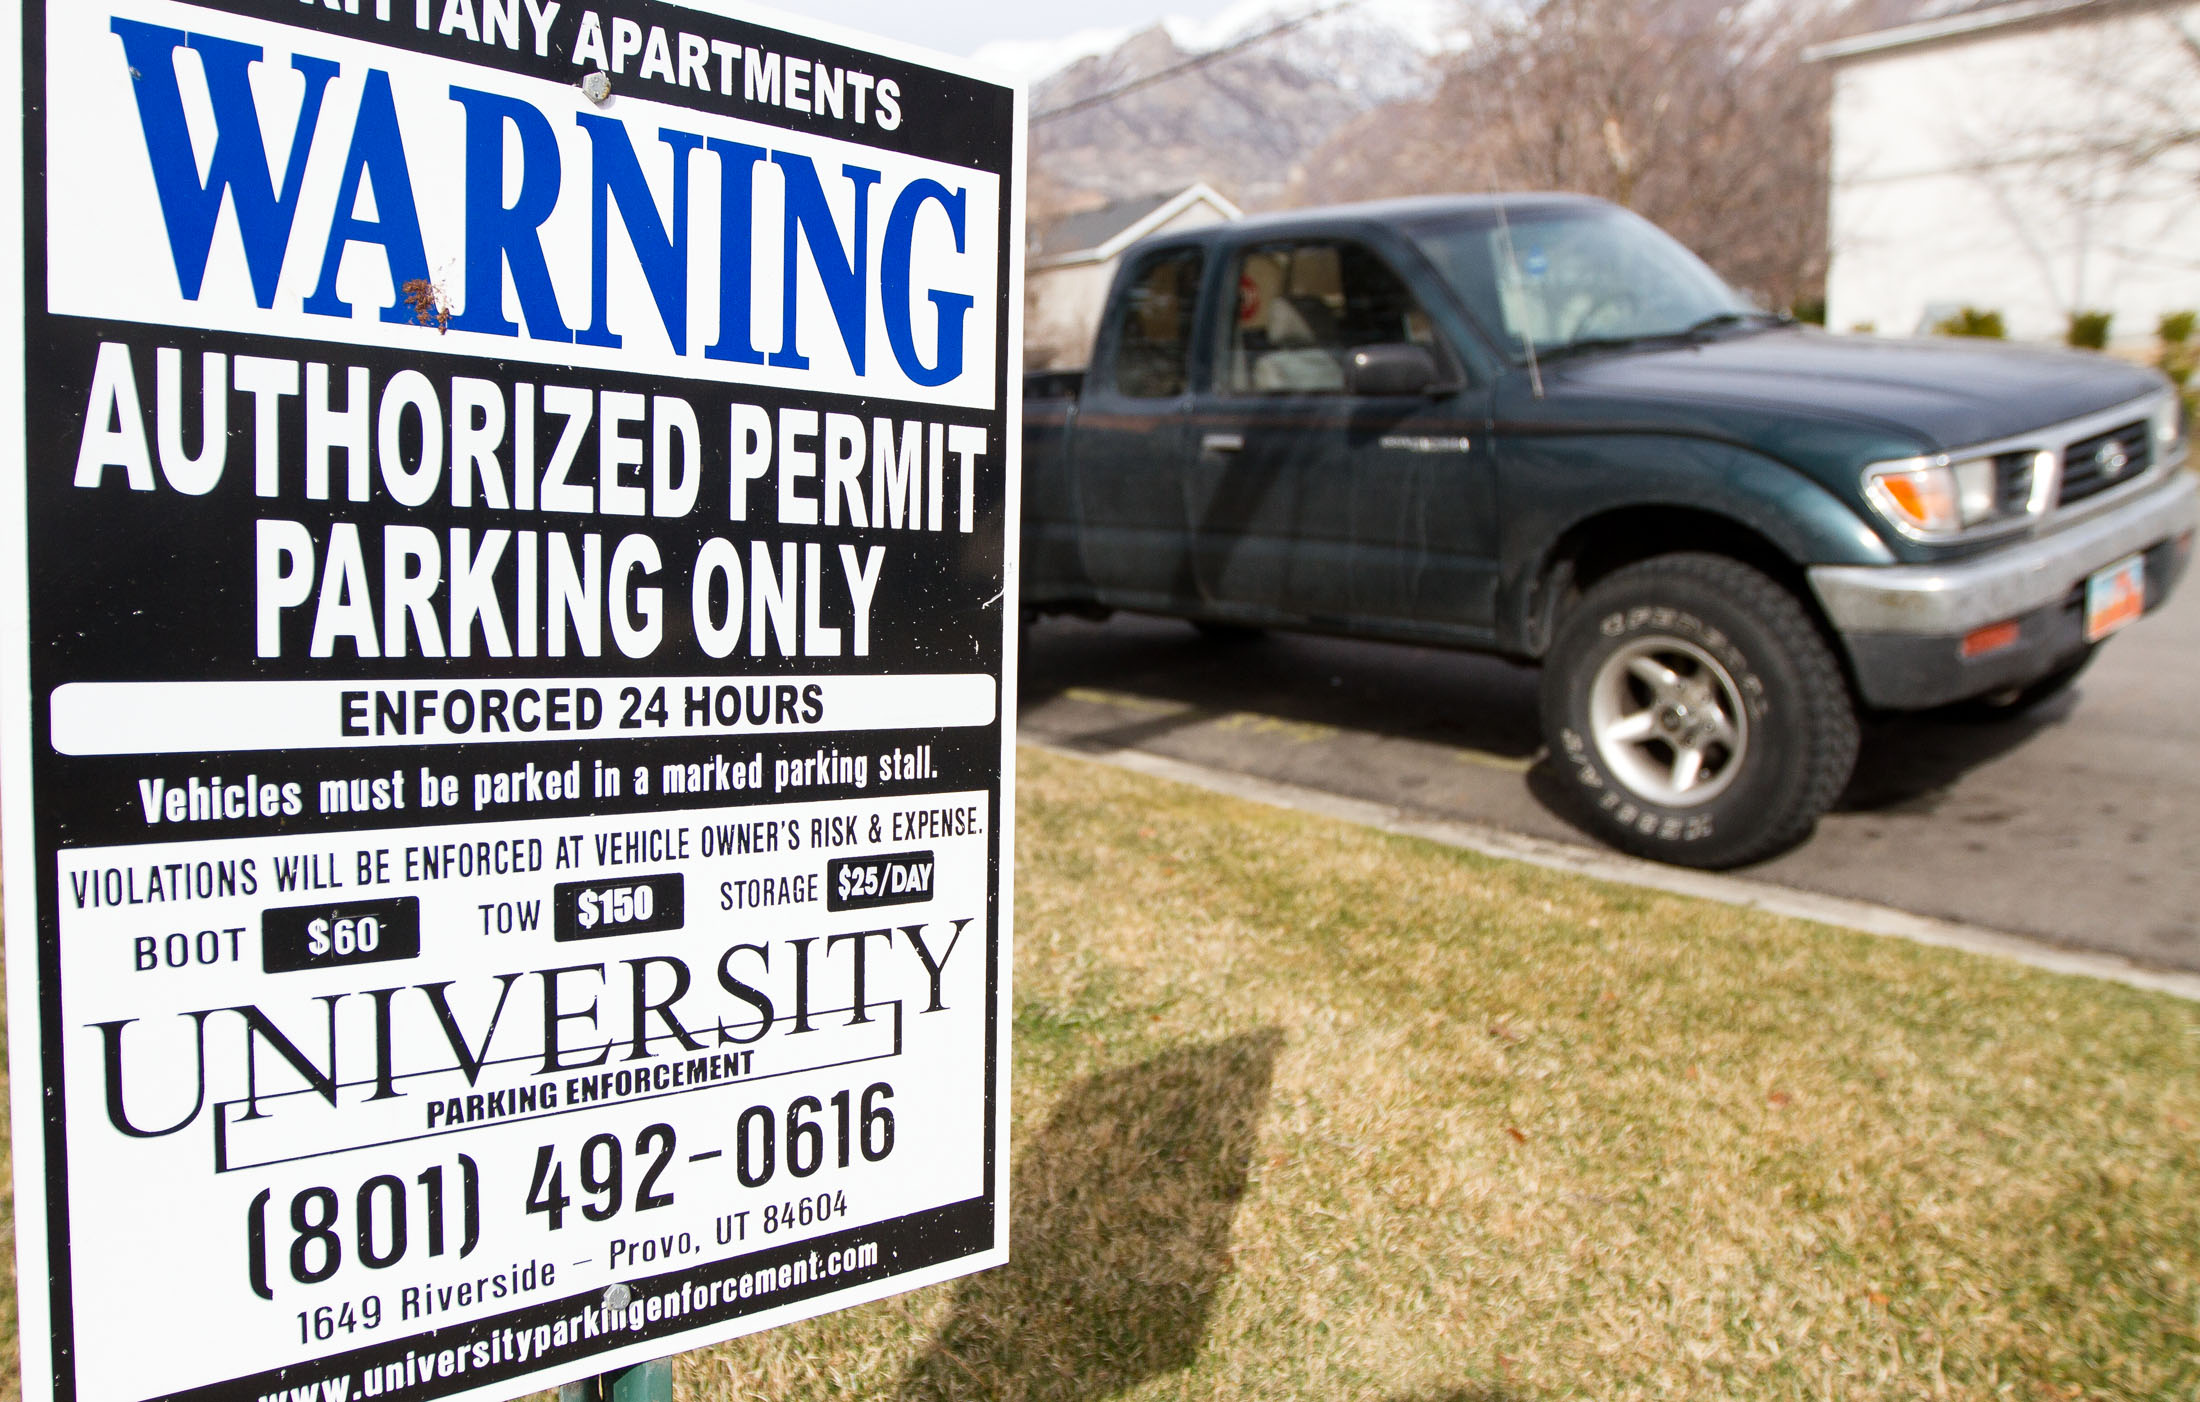 Predatory towing is an age-old issue and Provo, but new legislation may soon alleviate the issue. (Photo illustration by Sarah Hill)